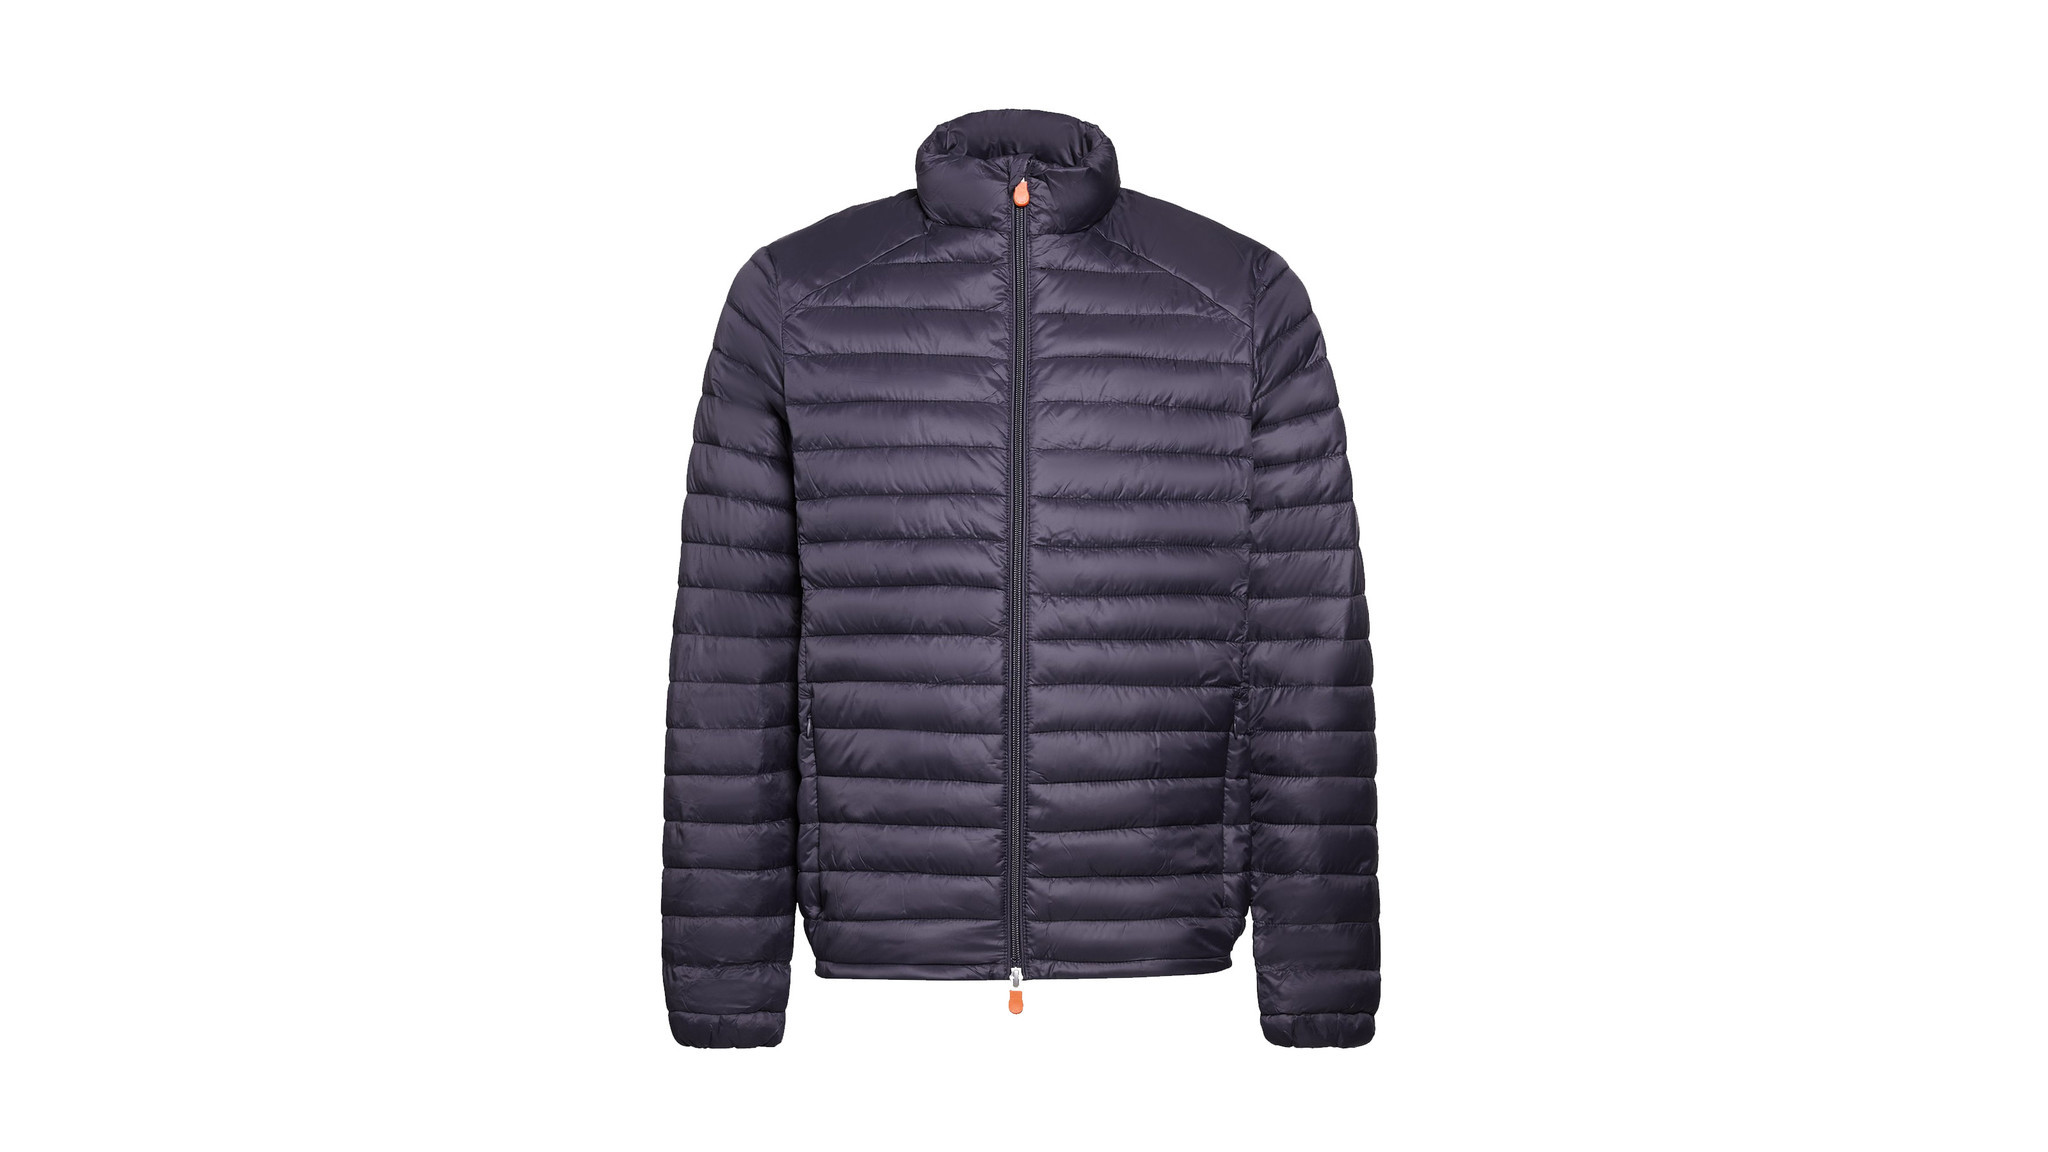 The men's Giga Puffer from Save the Duck.